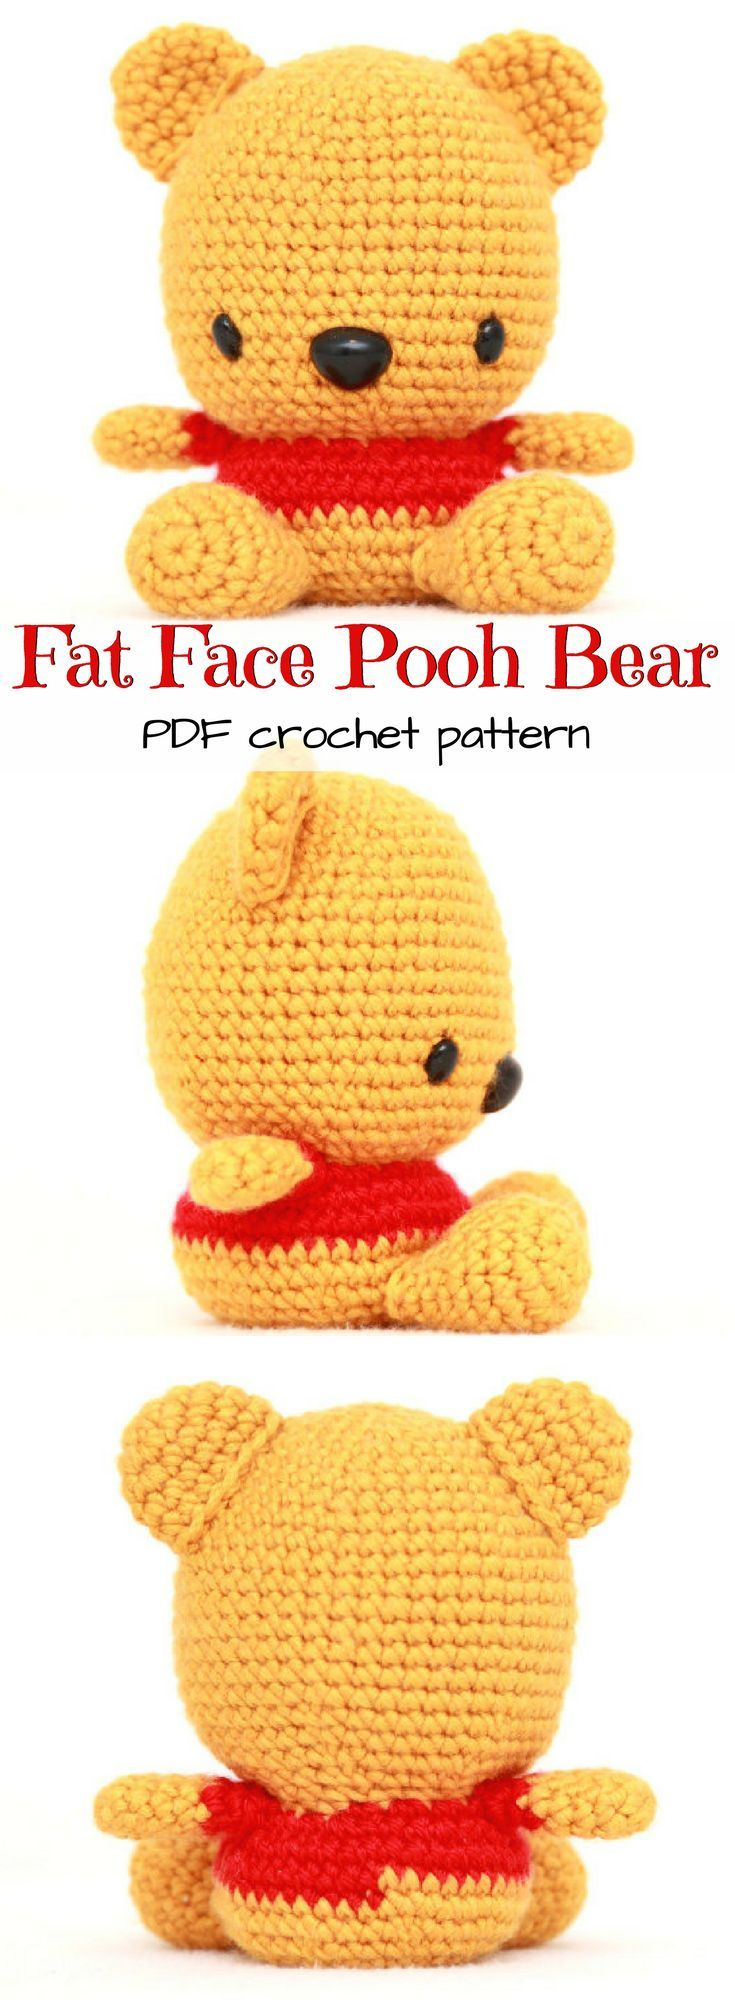 Eek! What an adorable amigurumi crochet pattern for Winnie the Pooh ...